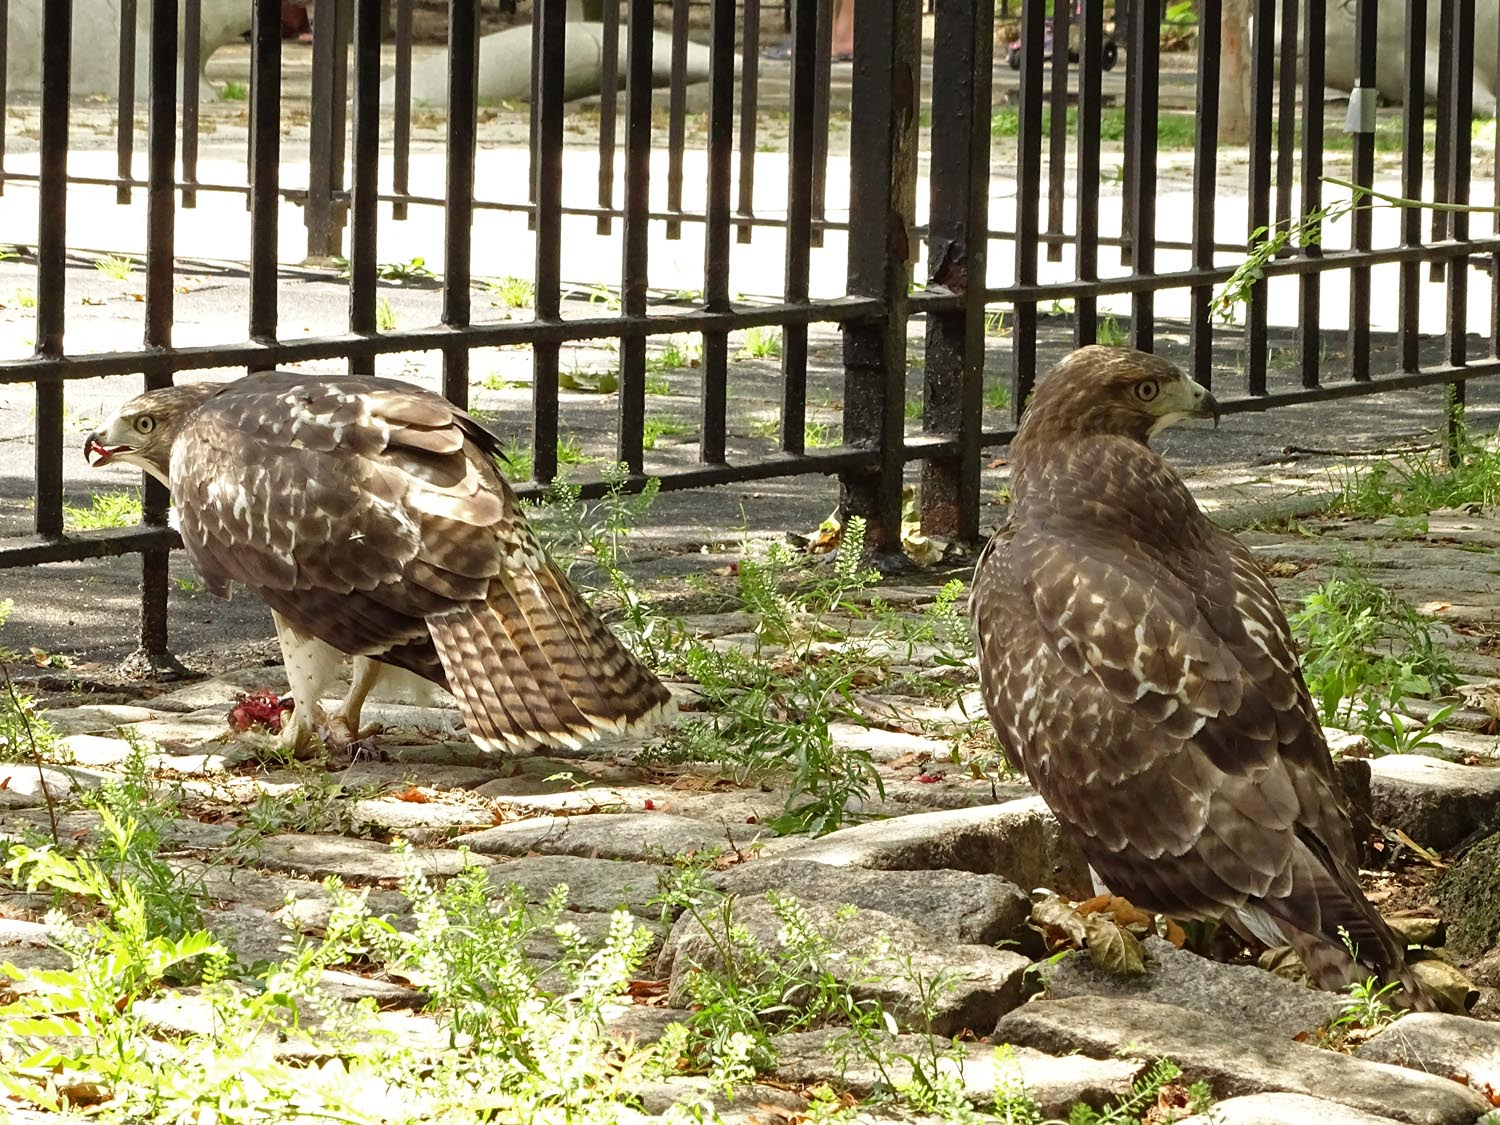 Two hawk babies, one pigeon. The stuff of drama. June 28, 2017